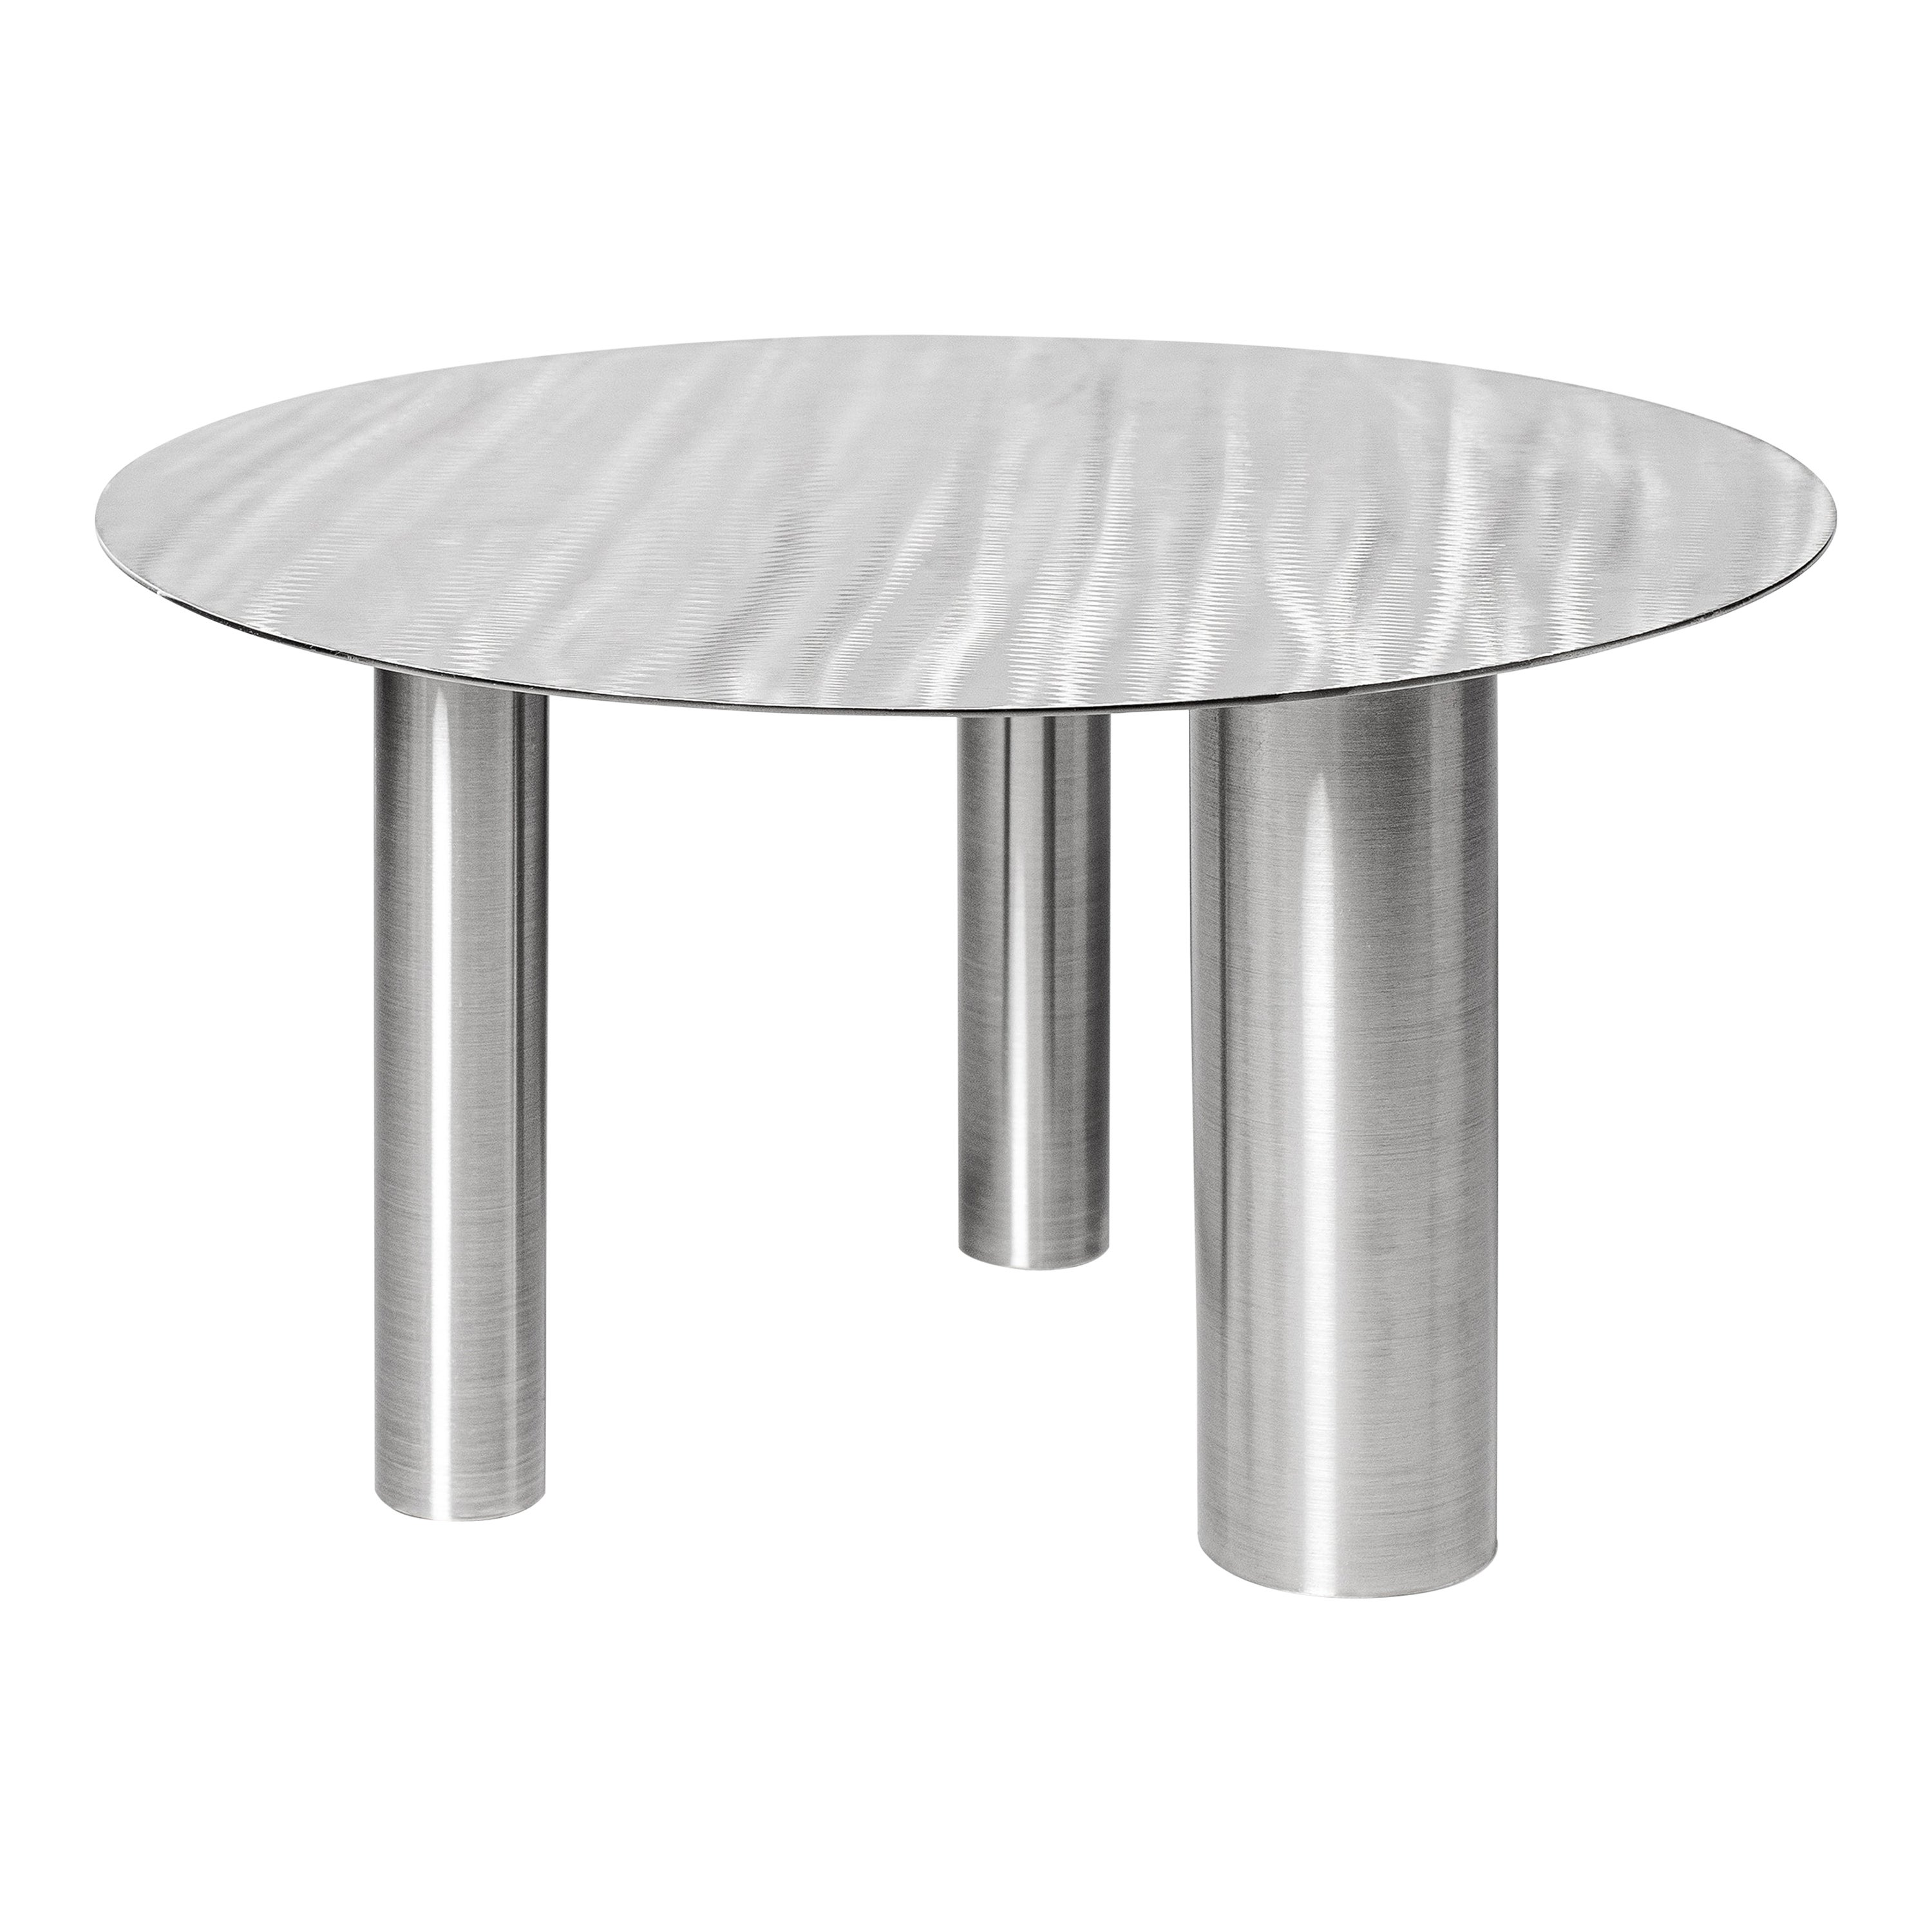 Low Coffee Table Brandt CS1 made of stainless steel by Noom